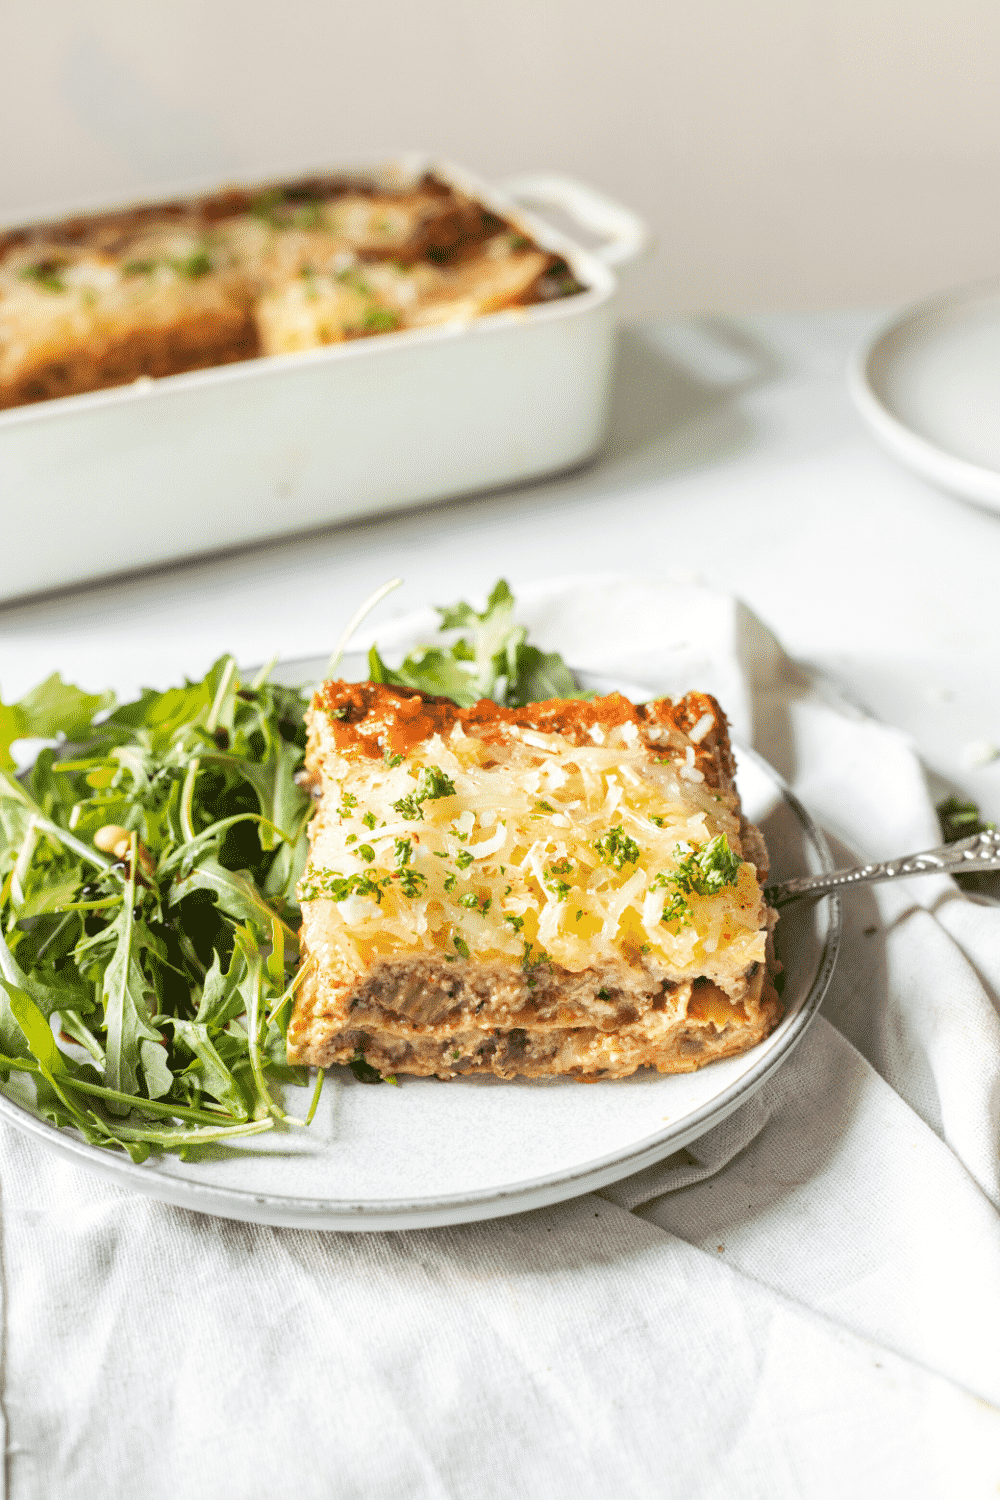 A white plate with vegan lasagna and arugula on it. There is a tray of lasagna behind the plate on a white counter.